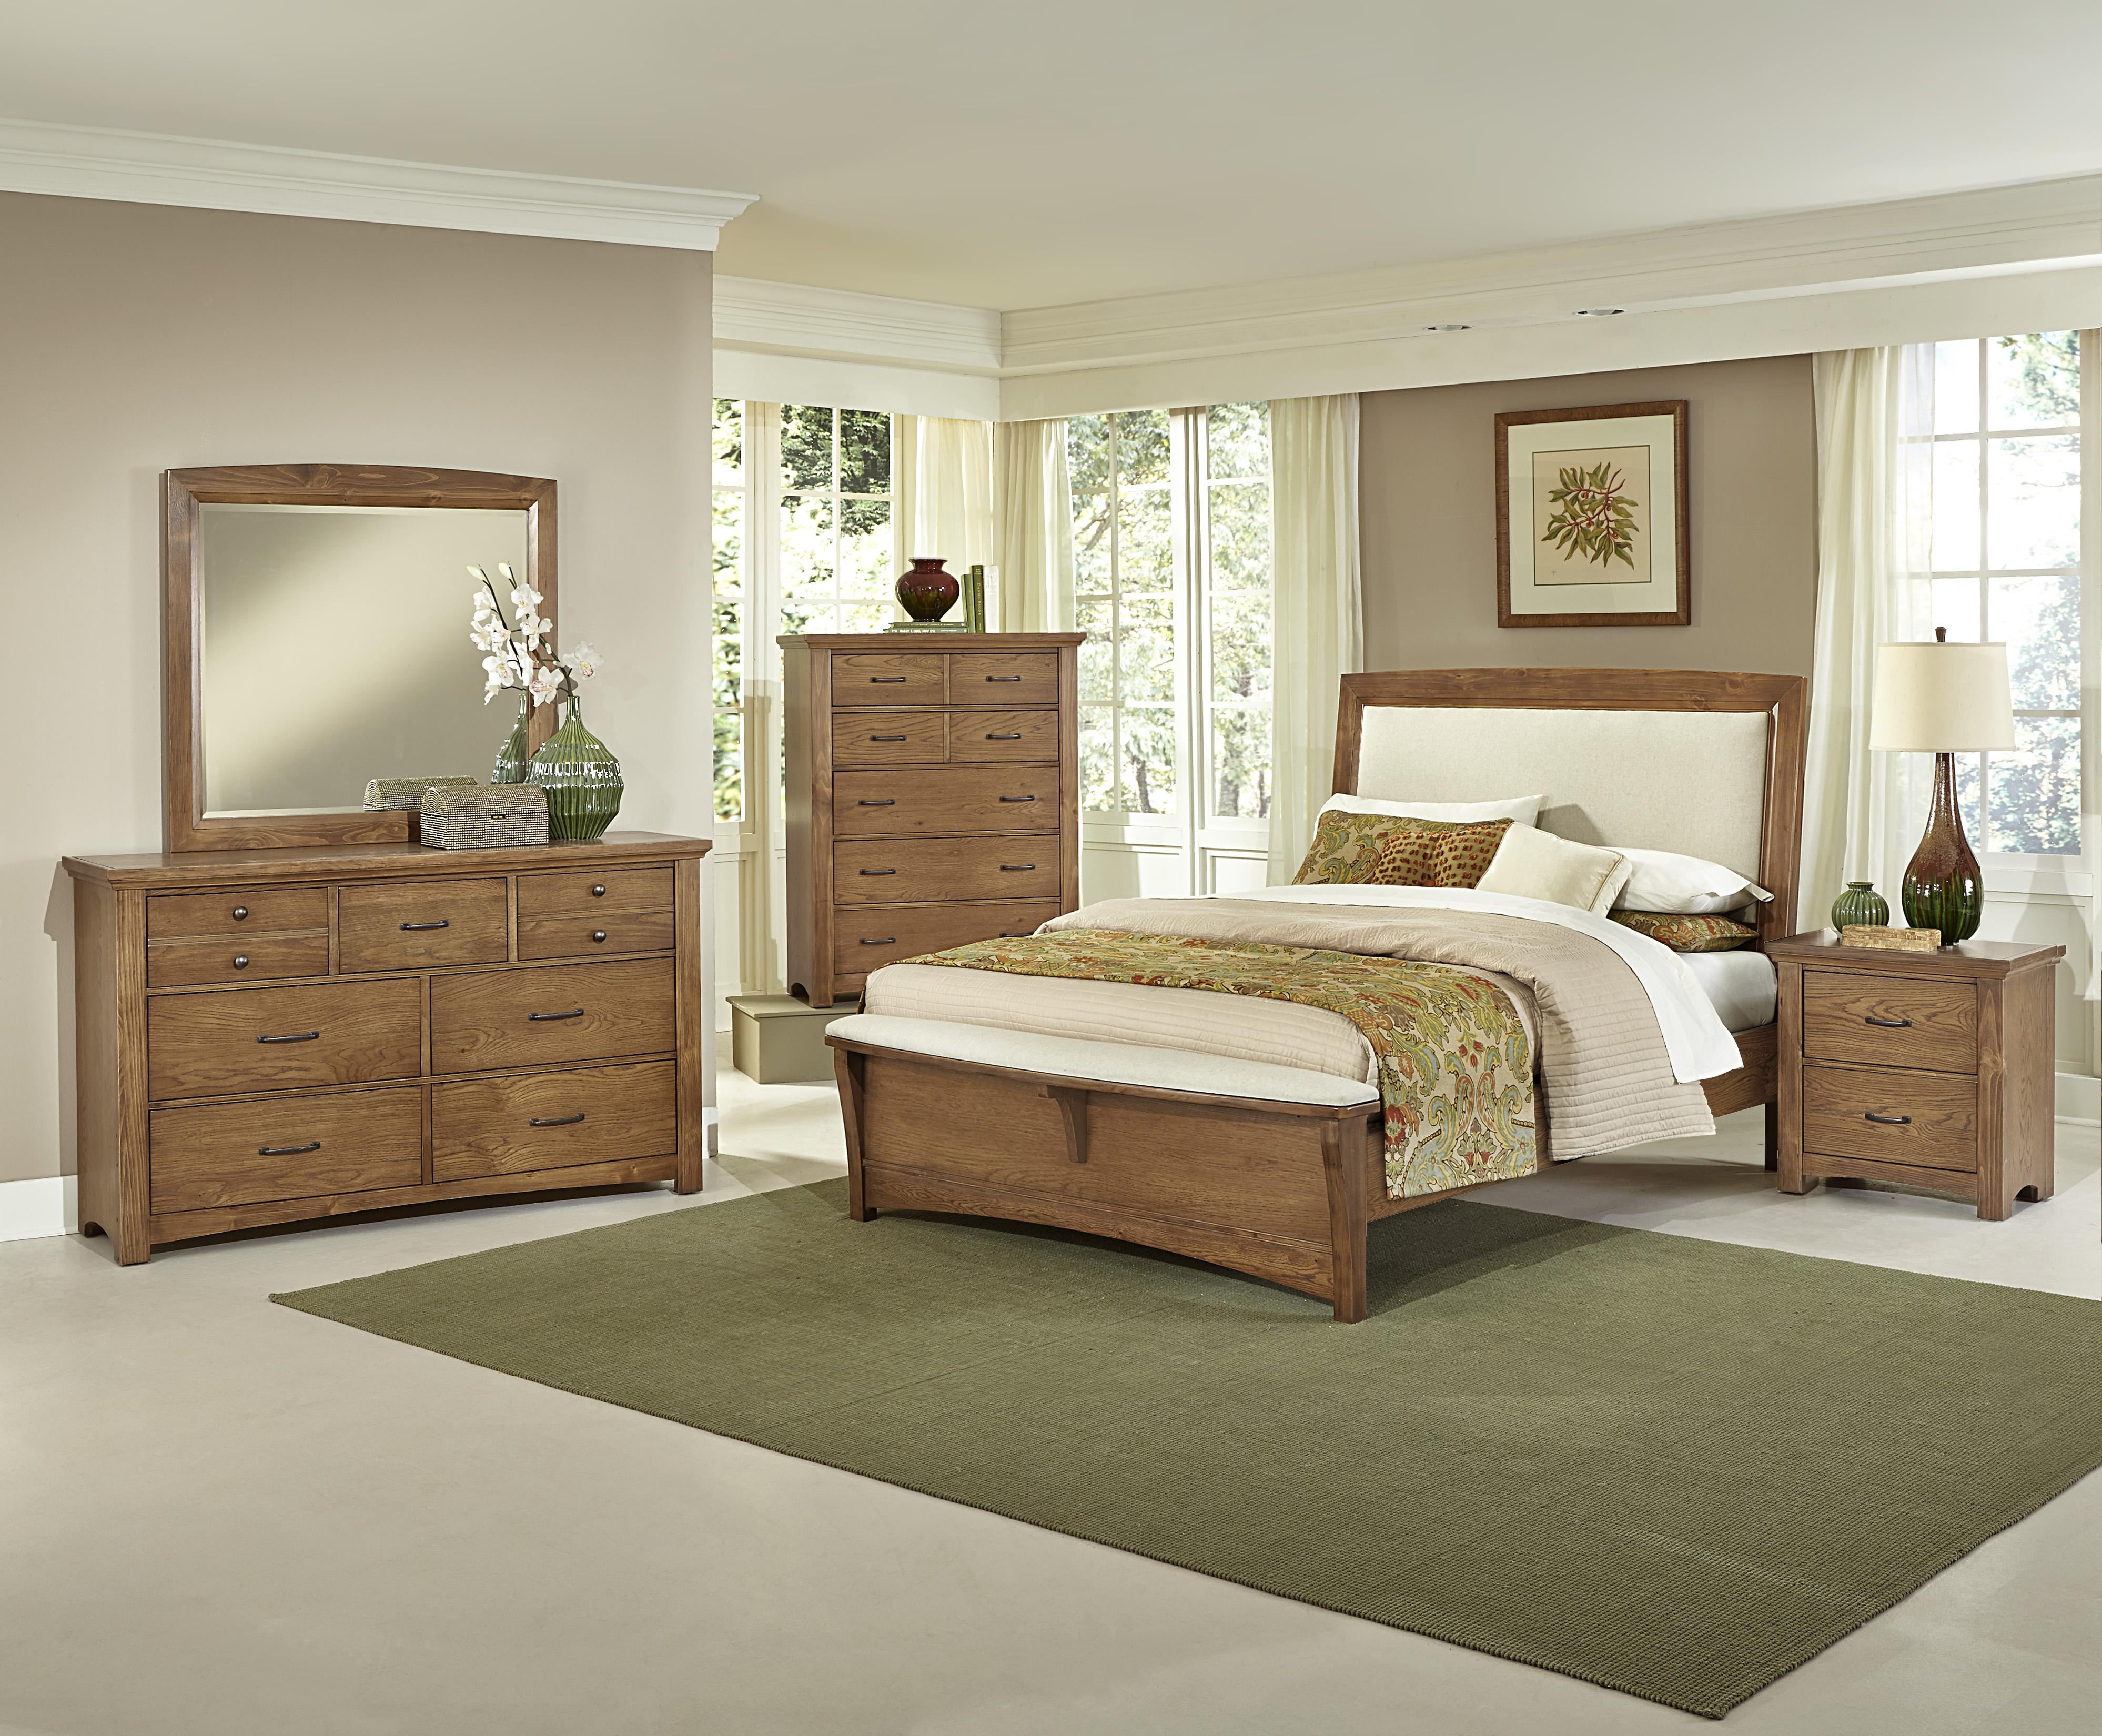 Vaughan Bassett Transitions Queen Bedroom Group - Item Number: BB63 Q Bedroom Group 4